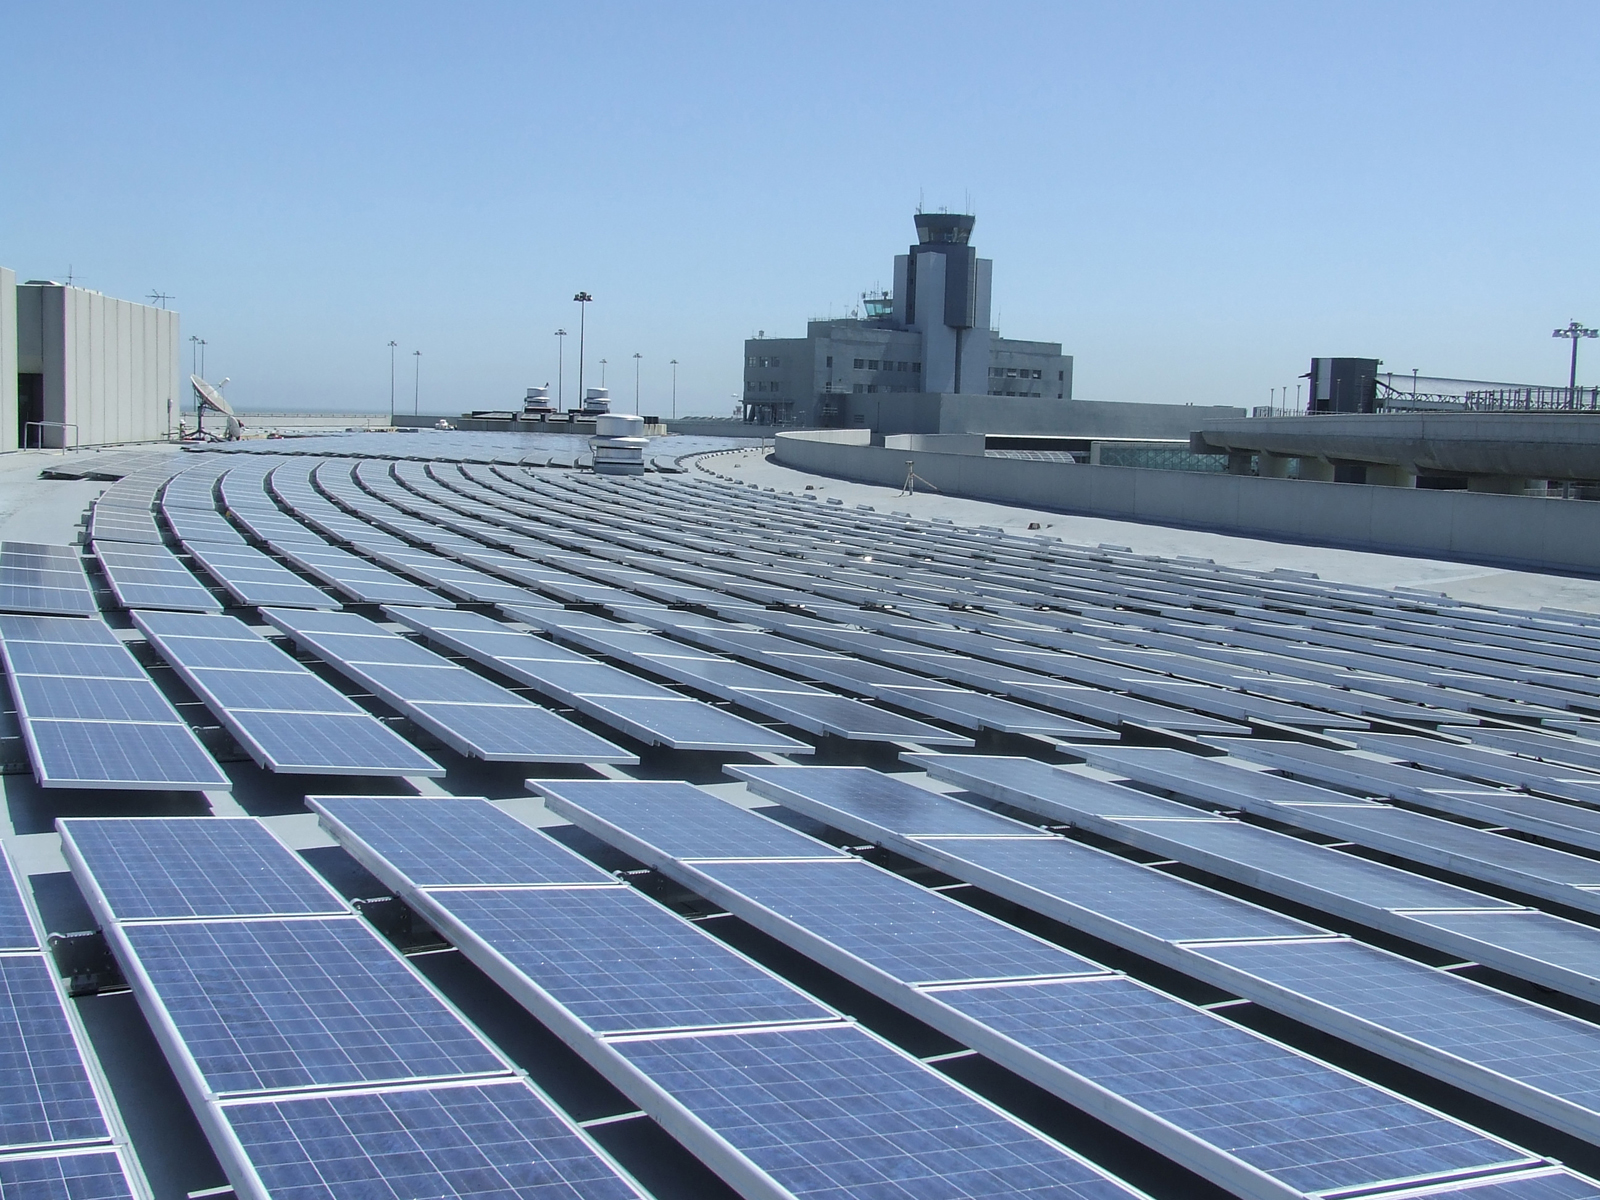 San Francisco Sunset Reservoir Solar Array, San Francisco, CA, solar array, photovoltaic, BASS Electric, Interactive Resources, structural engineering services